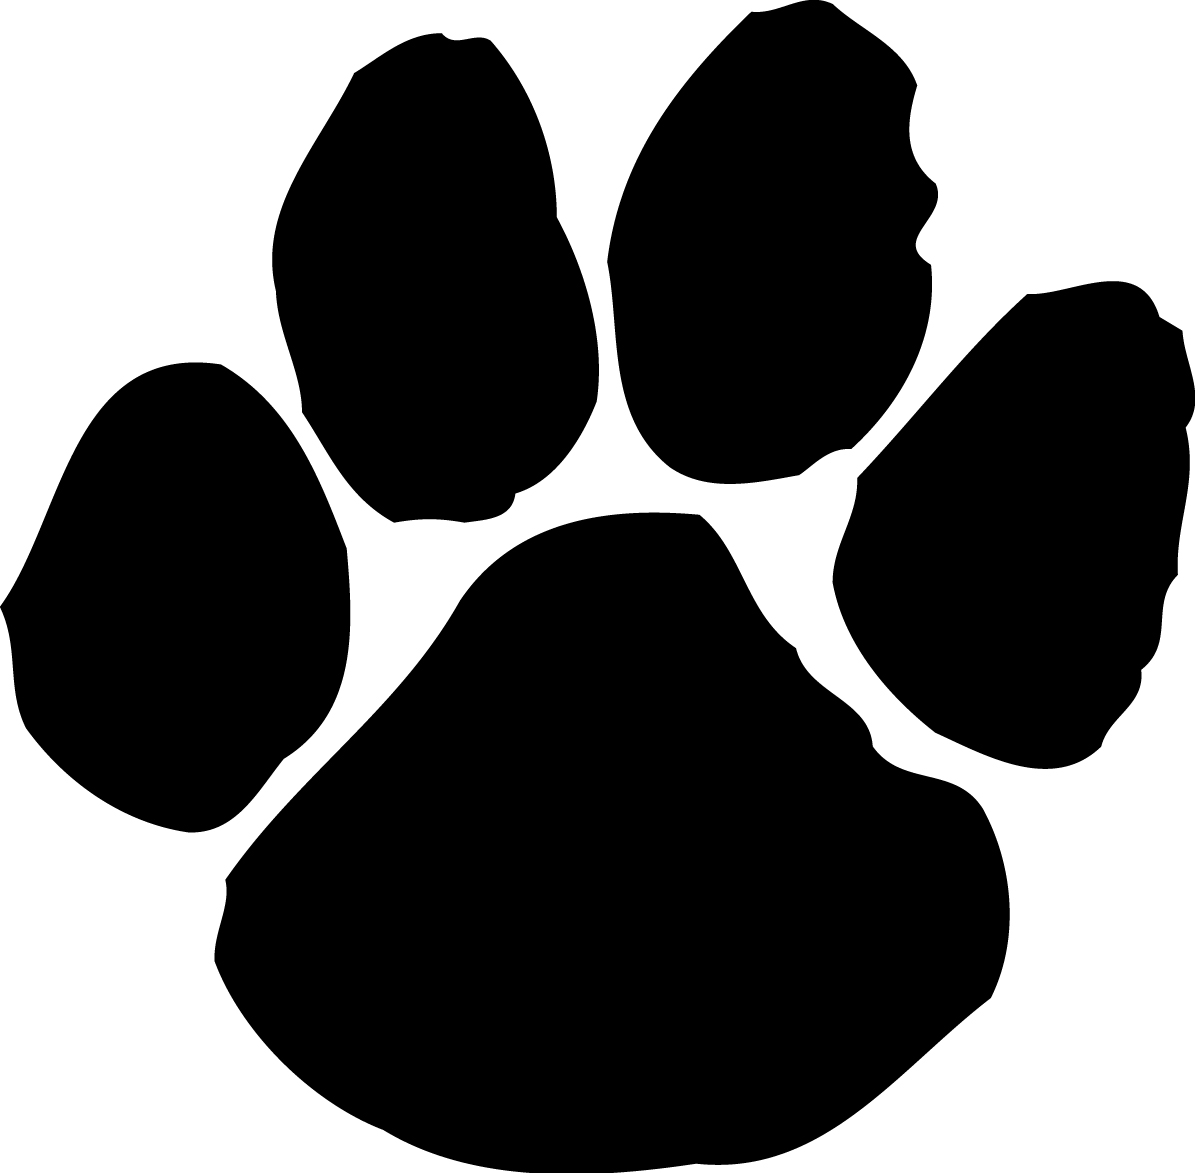 dog paw print template clipart best paw print clip art transparent background paw prints clipart for wolves